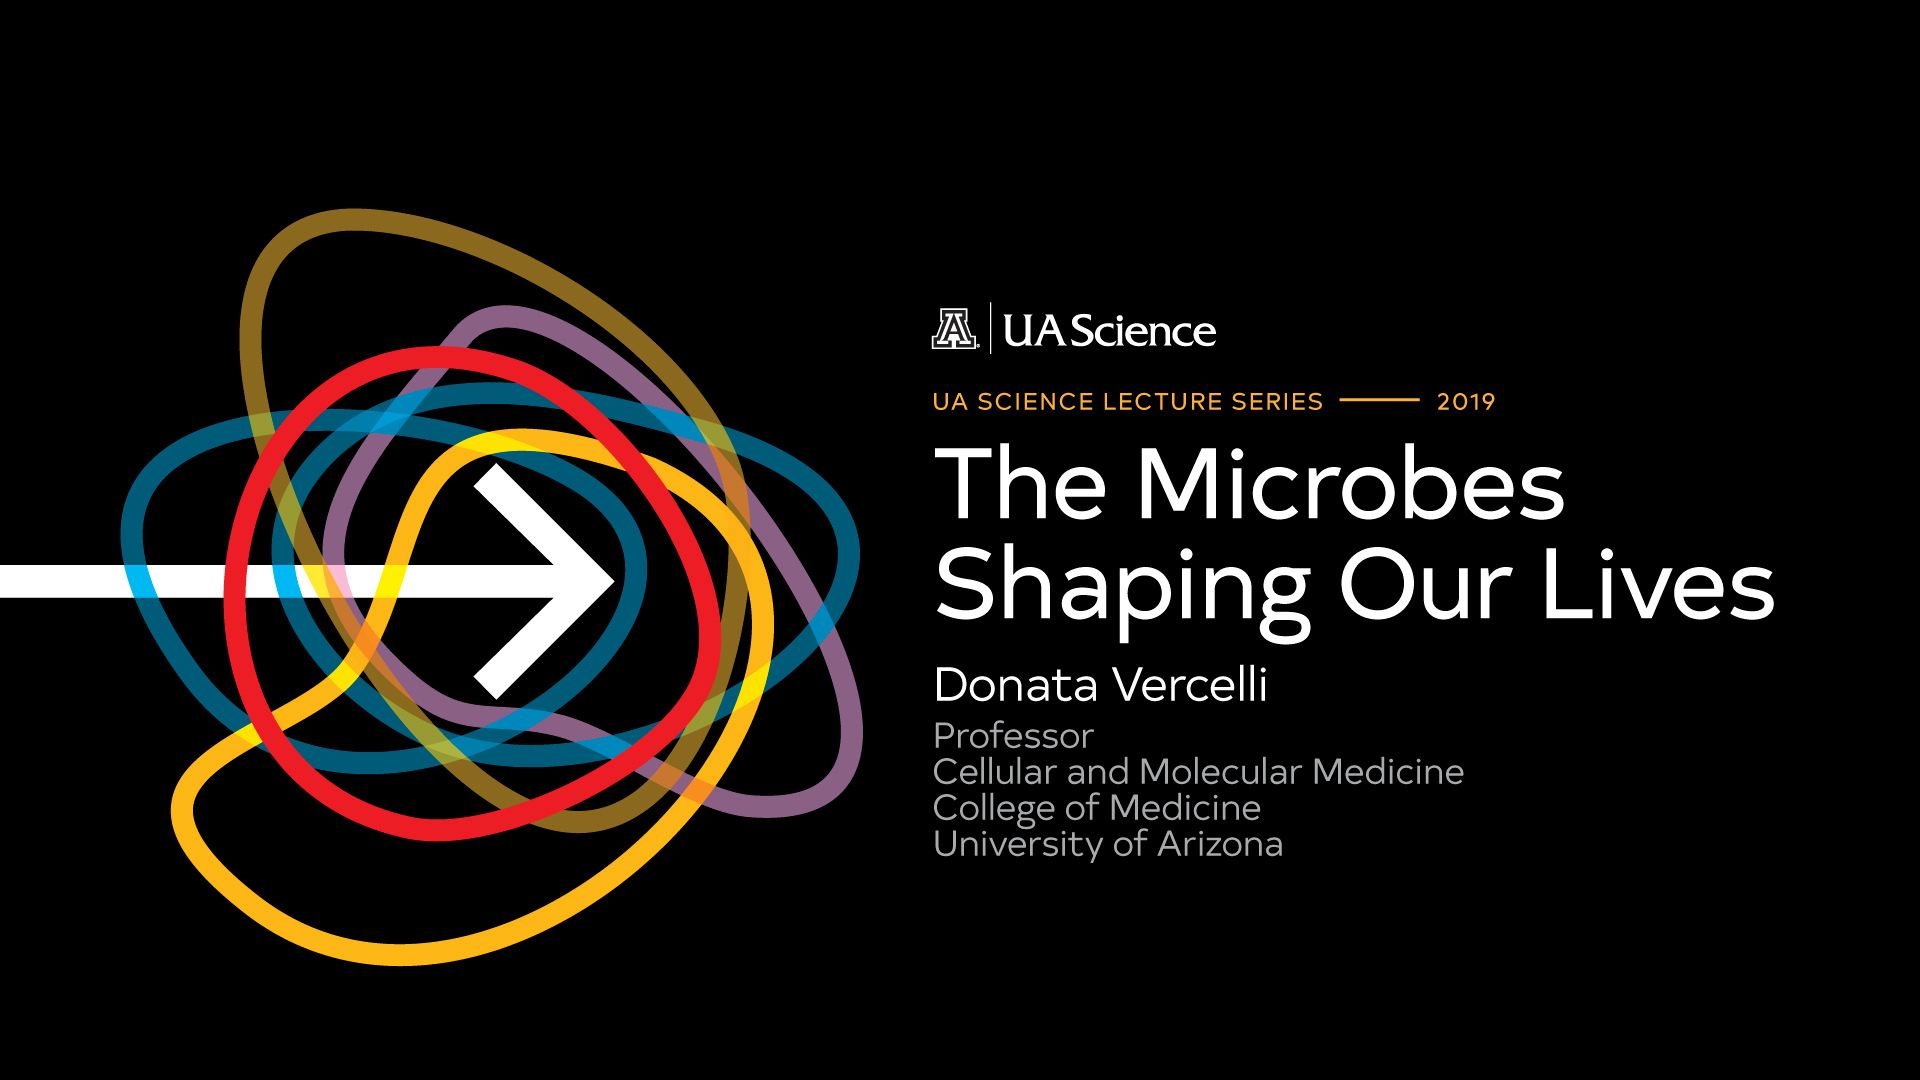 UA Science Lecture Series 2019 Microbes Shaping Our Lives